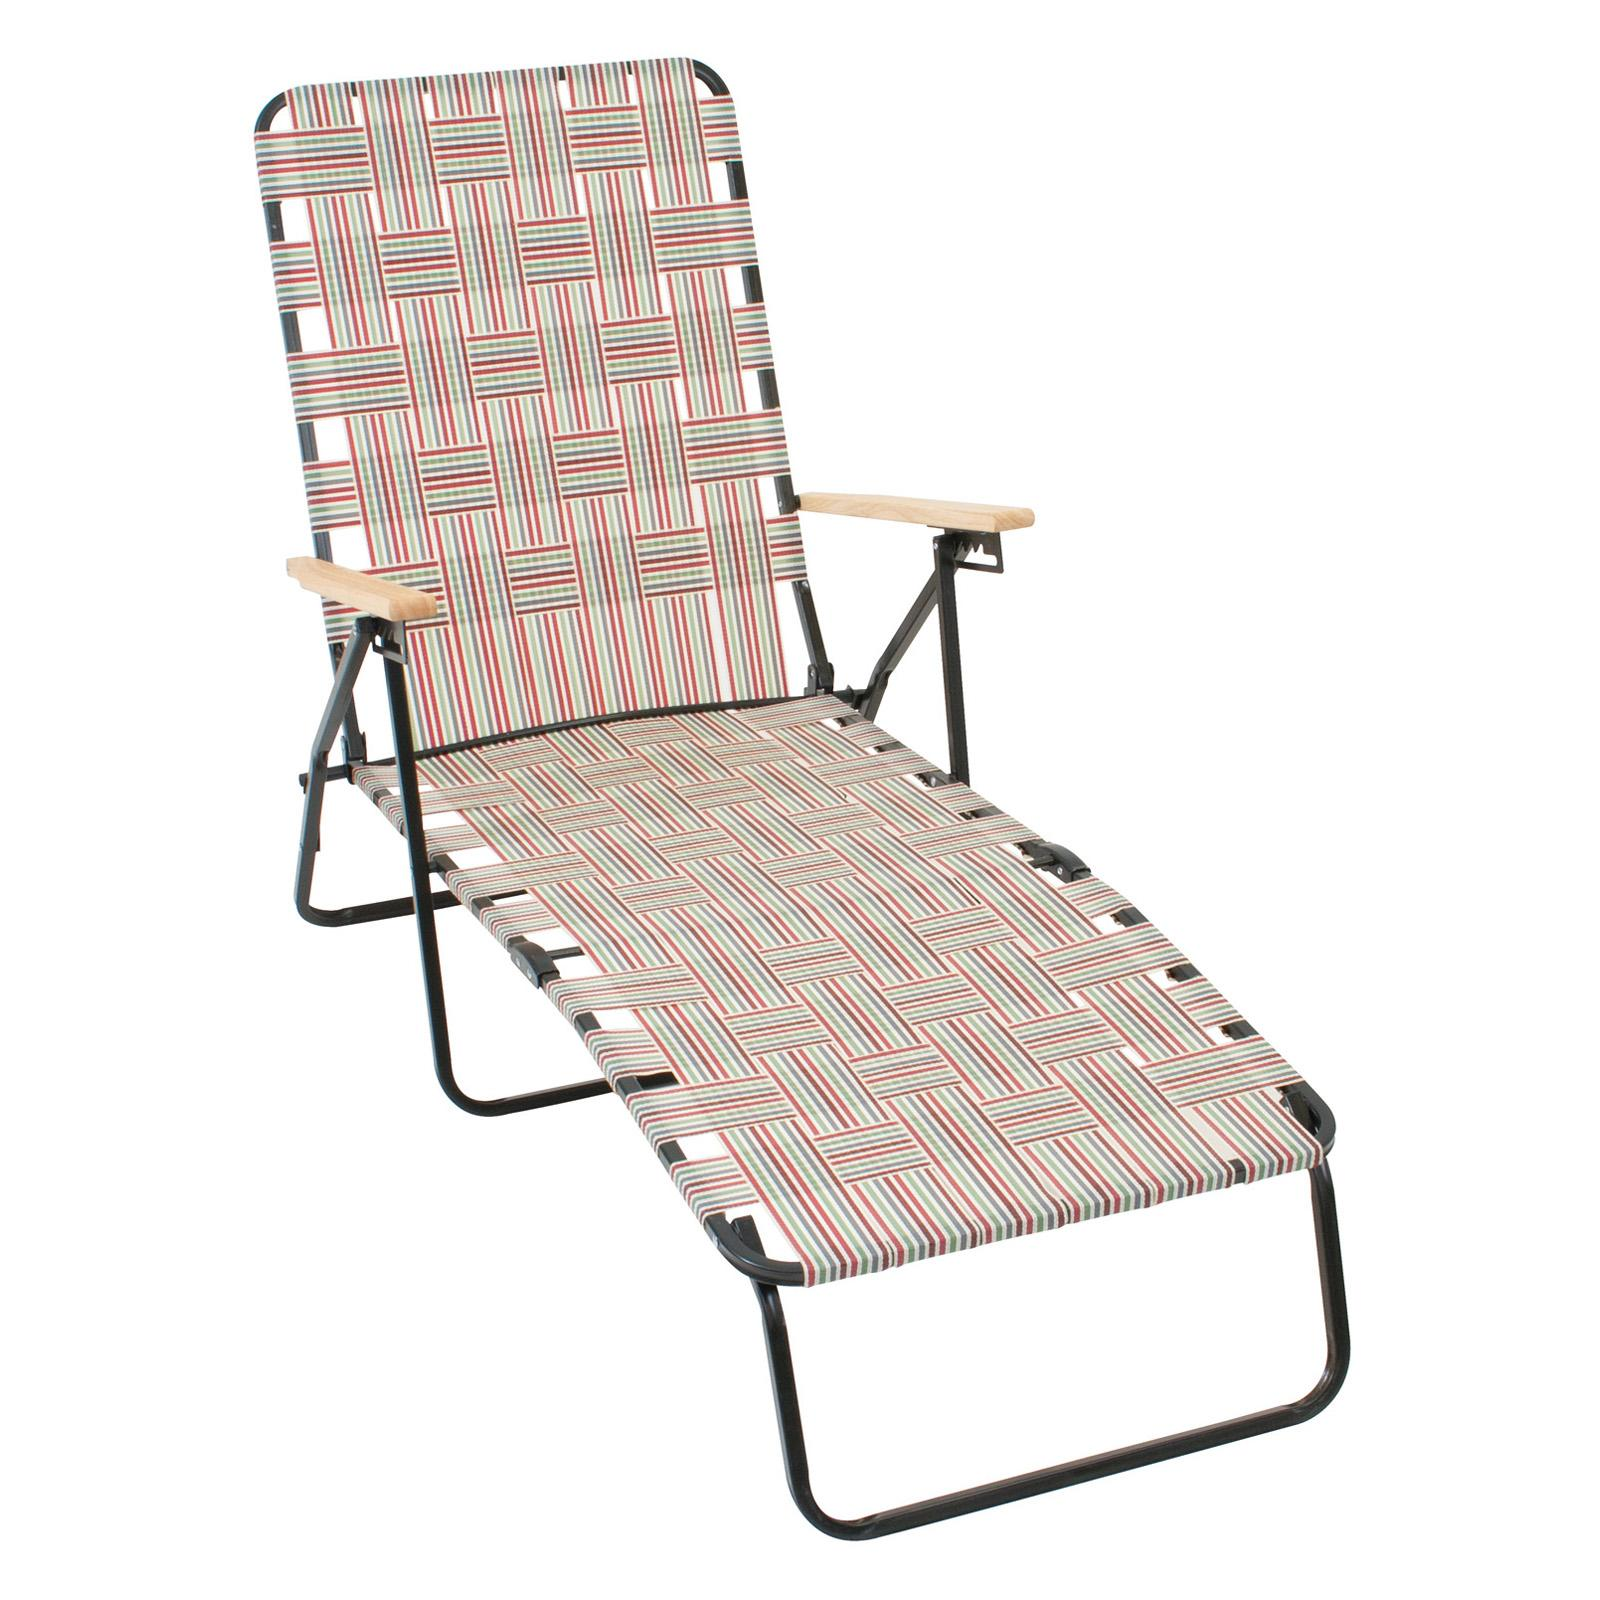 Rio Brands Rio Deluxe Folding Web Chaise Lounge Chair Ebay